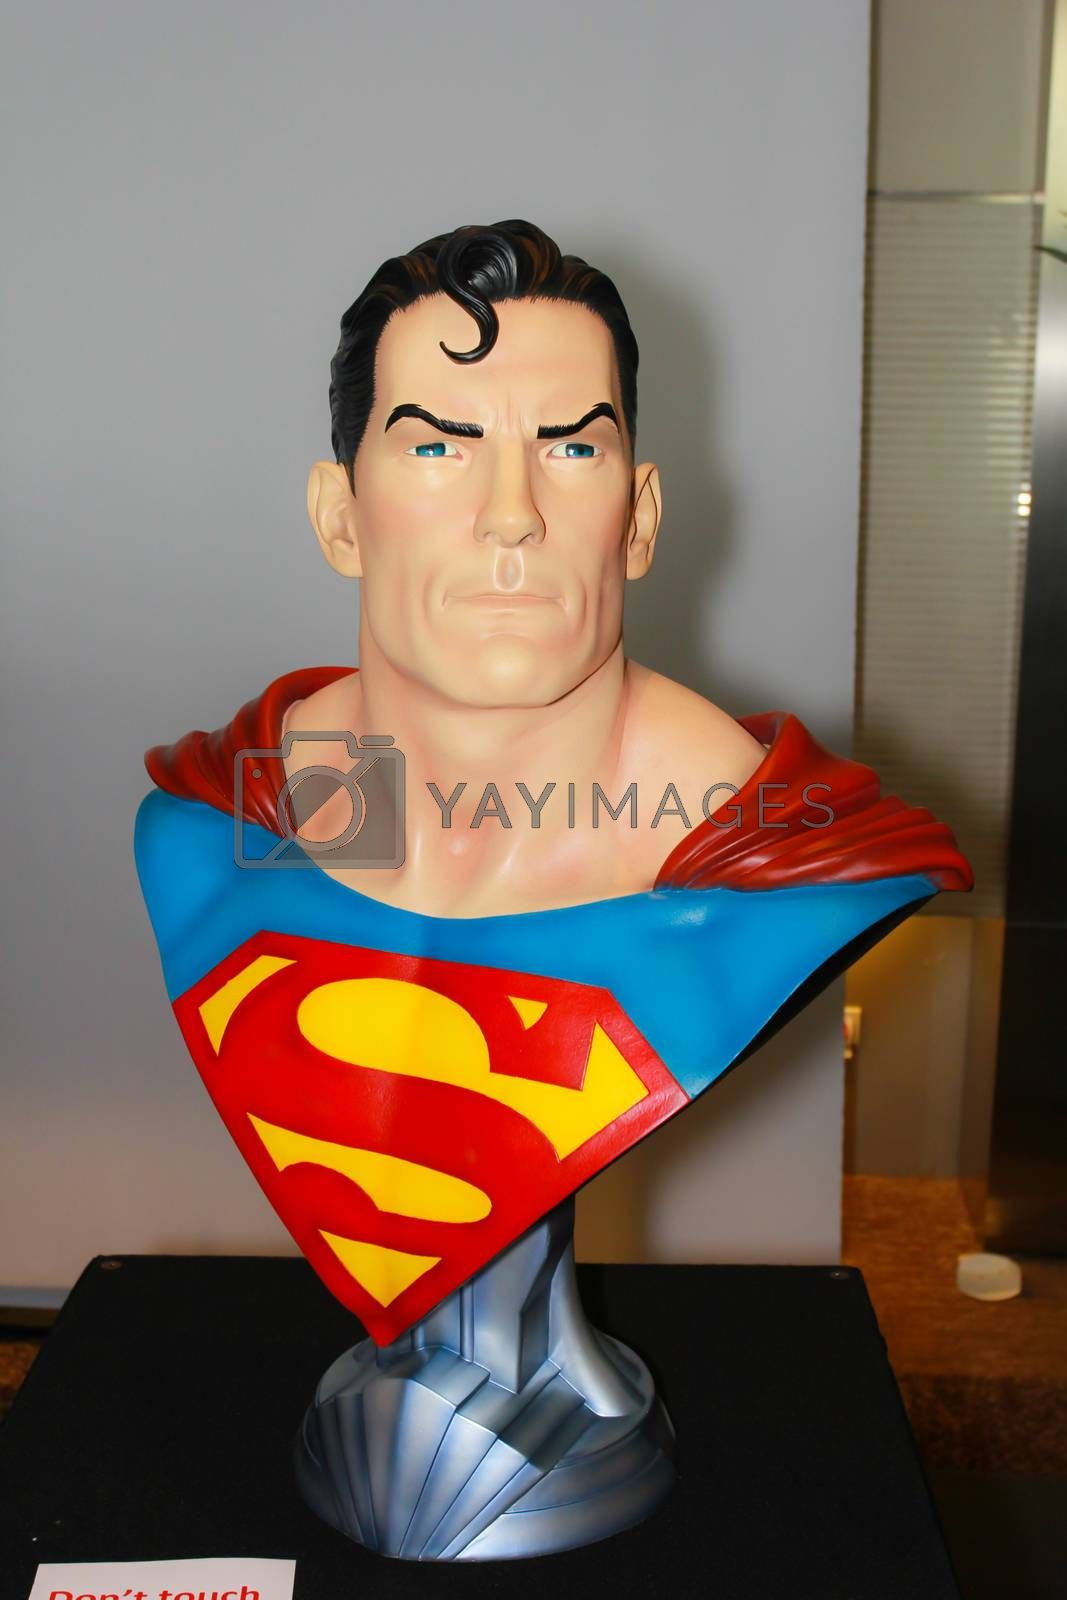 Royalty free image of A model of the character Superman from the movies and comics  by redthirteen